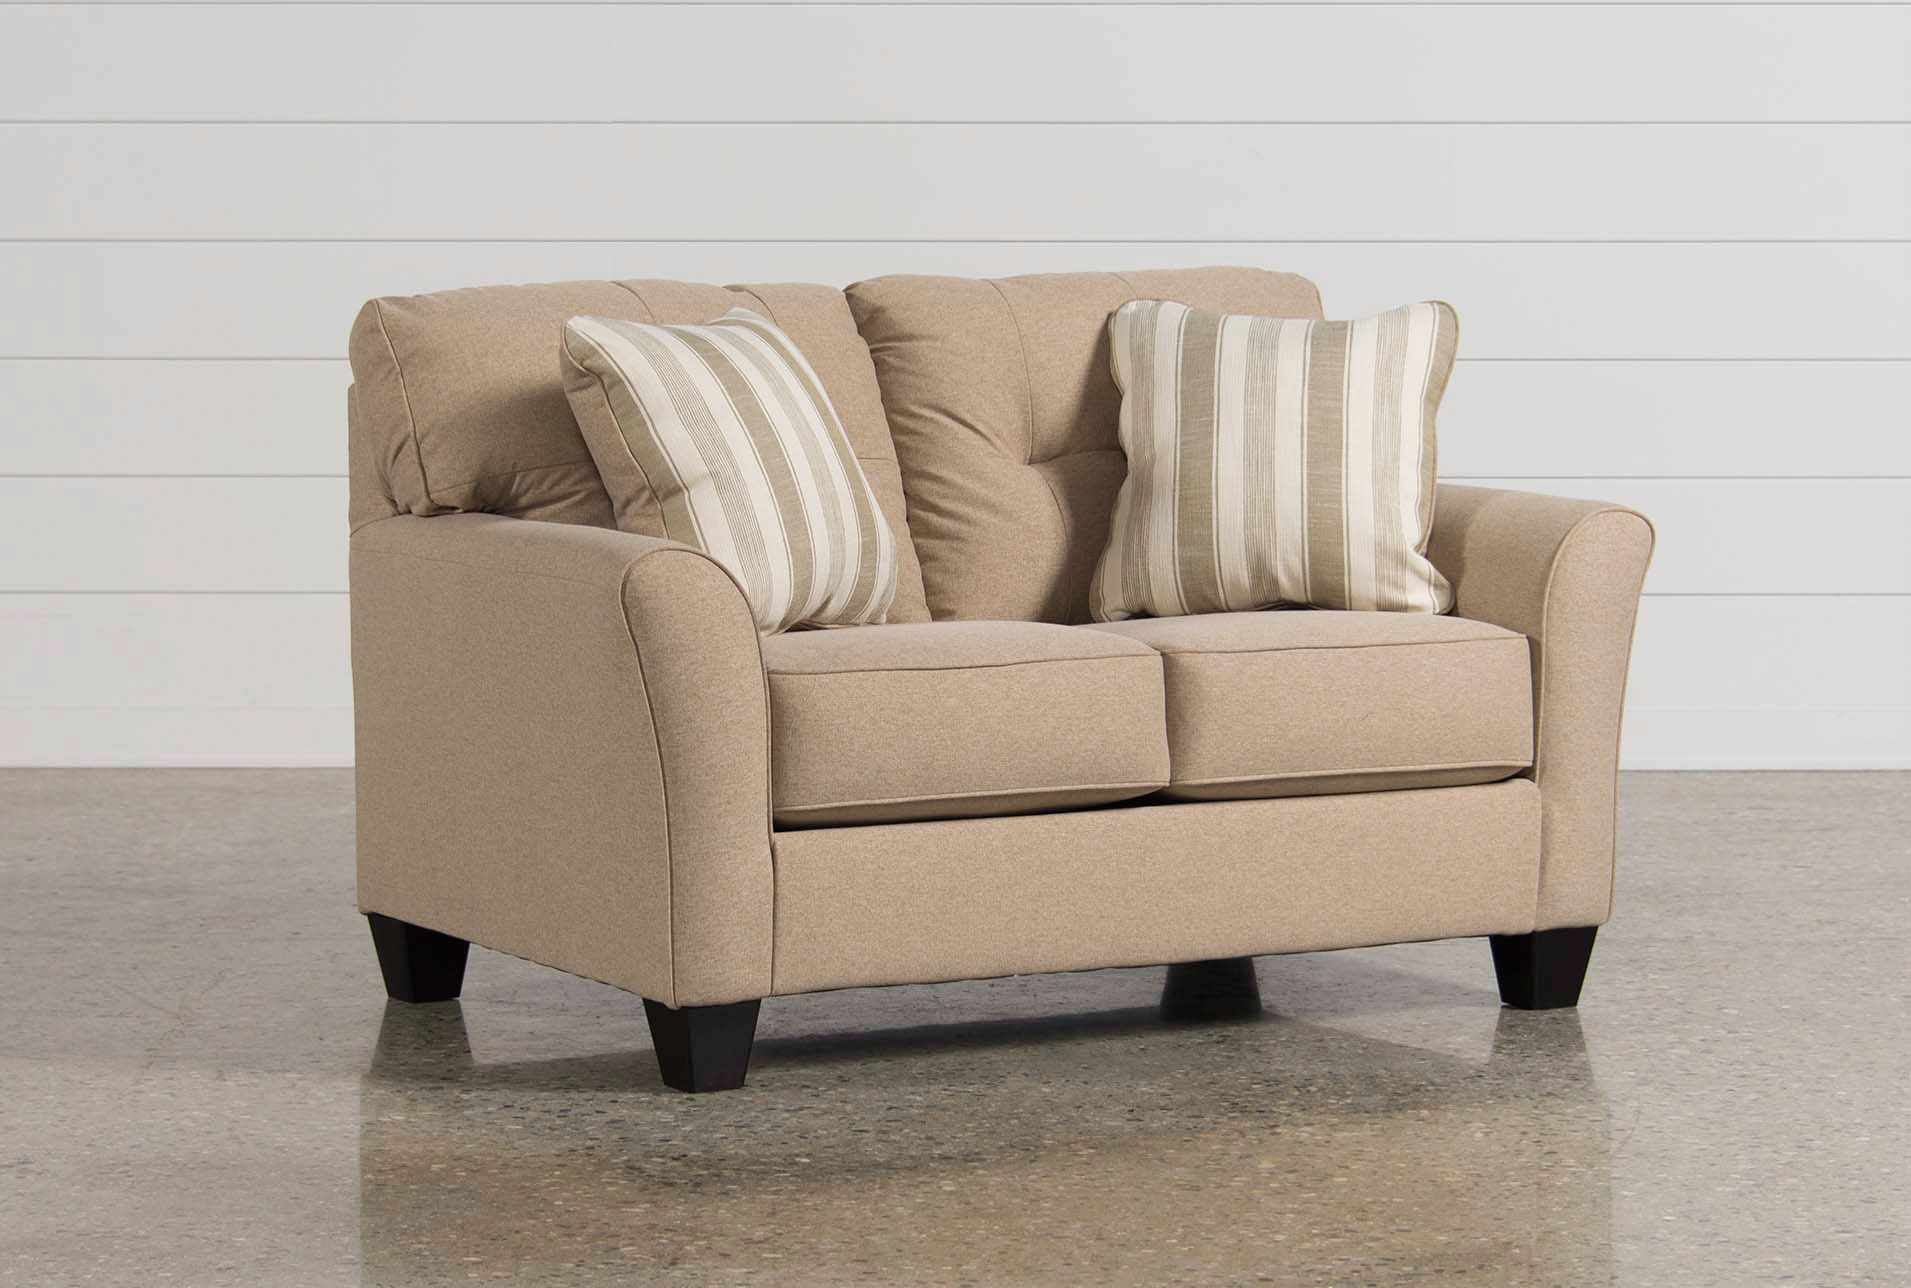 Tufted Living Room Furniture | Living Spaces